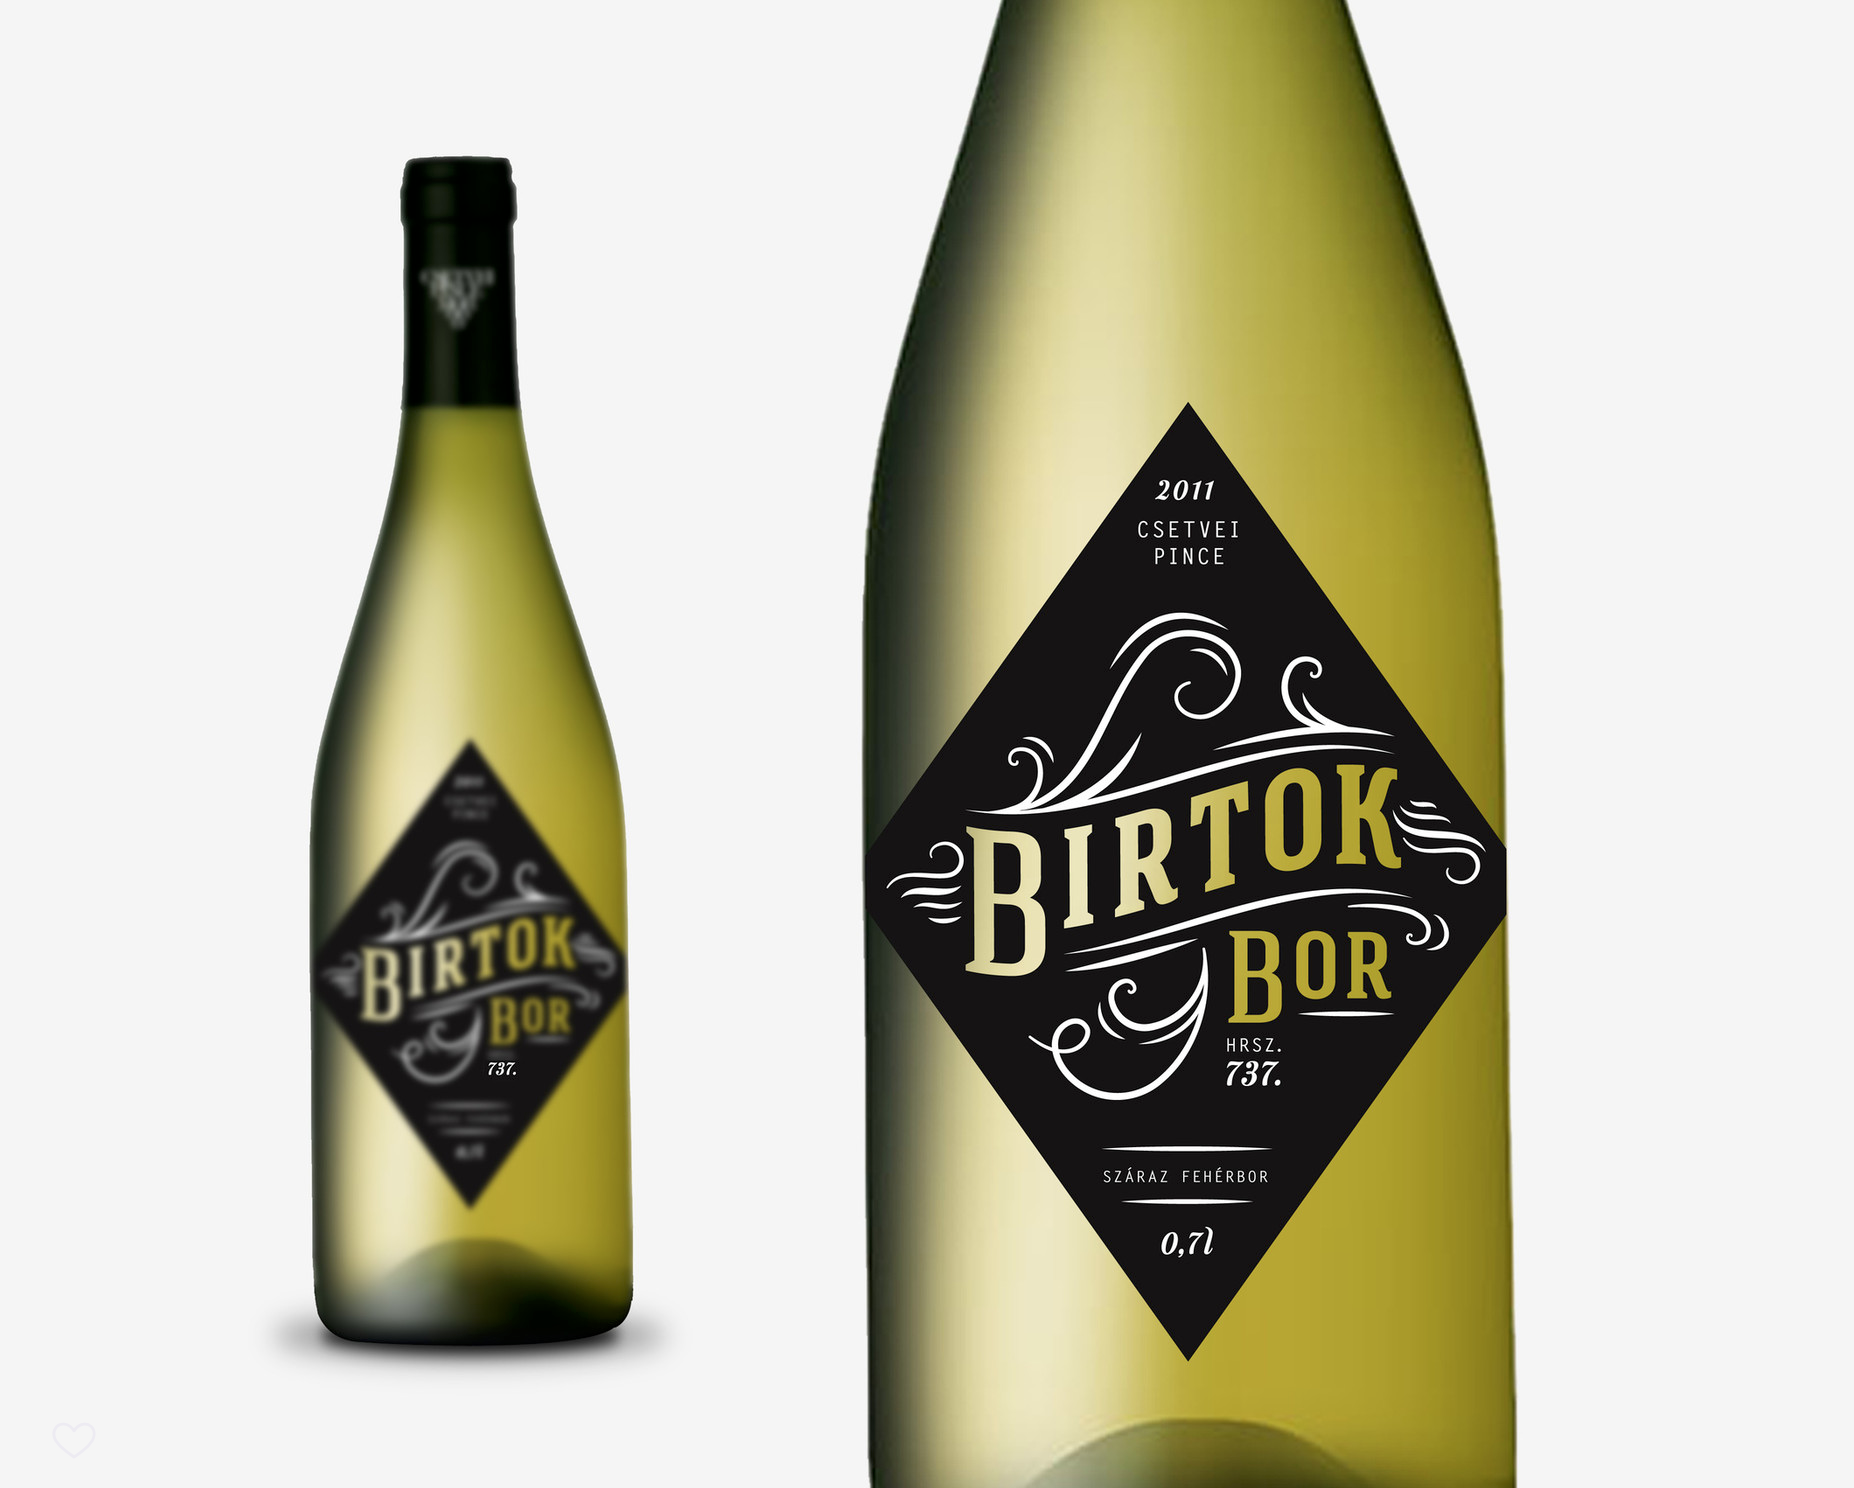 Wine label / Birtok bor hrsz. 737.